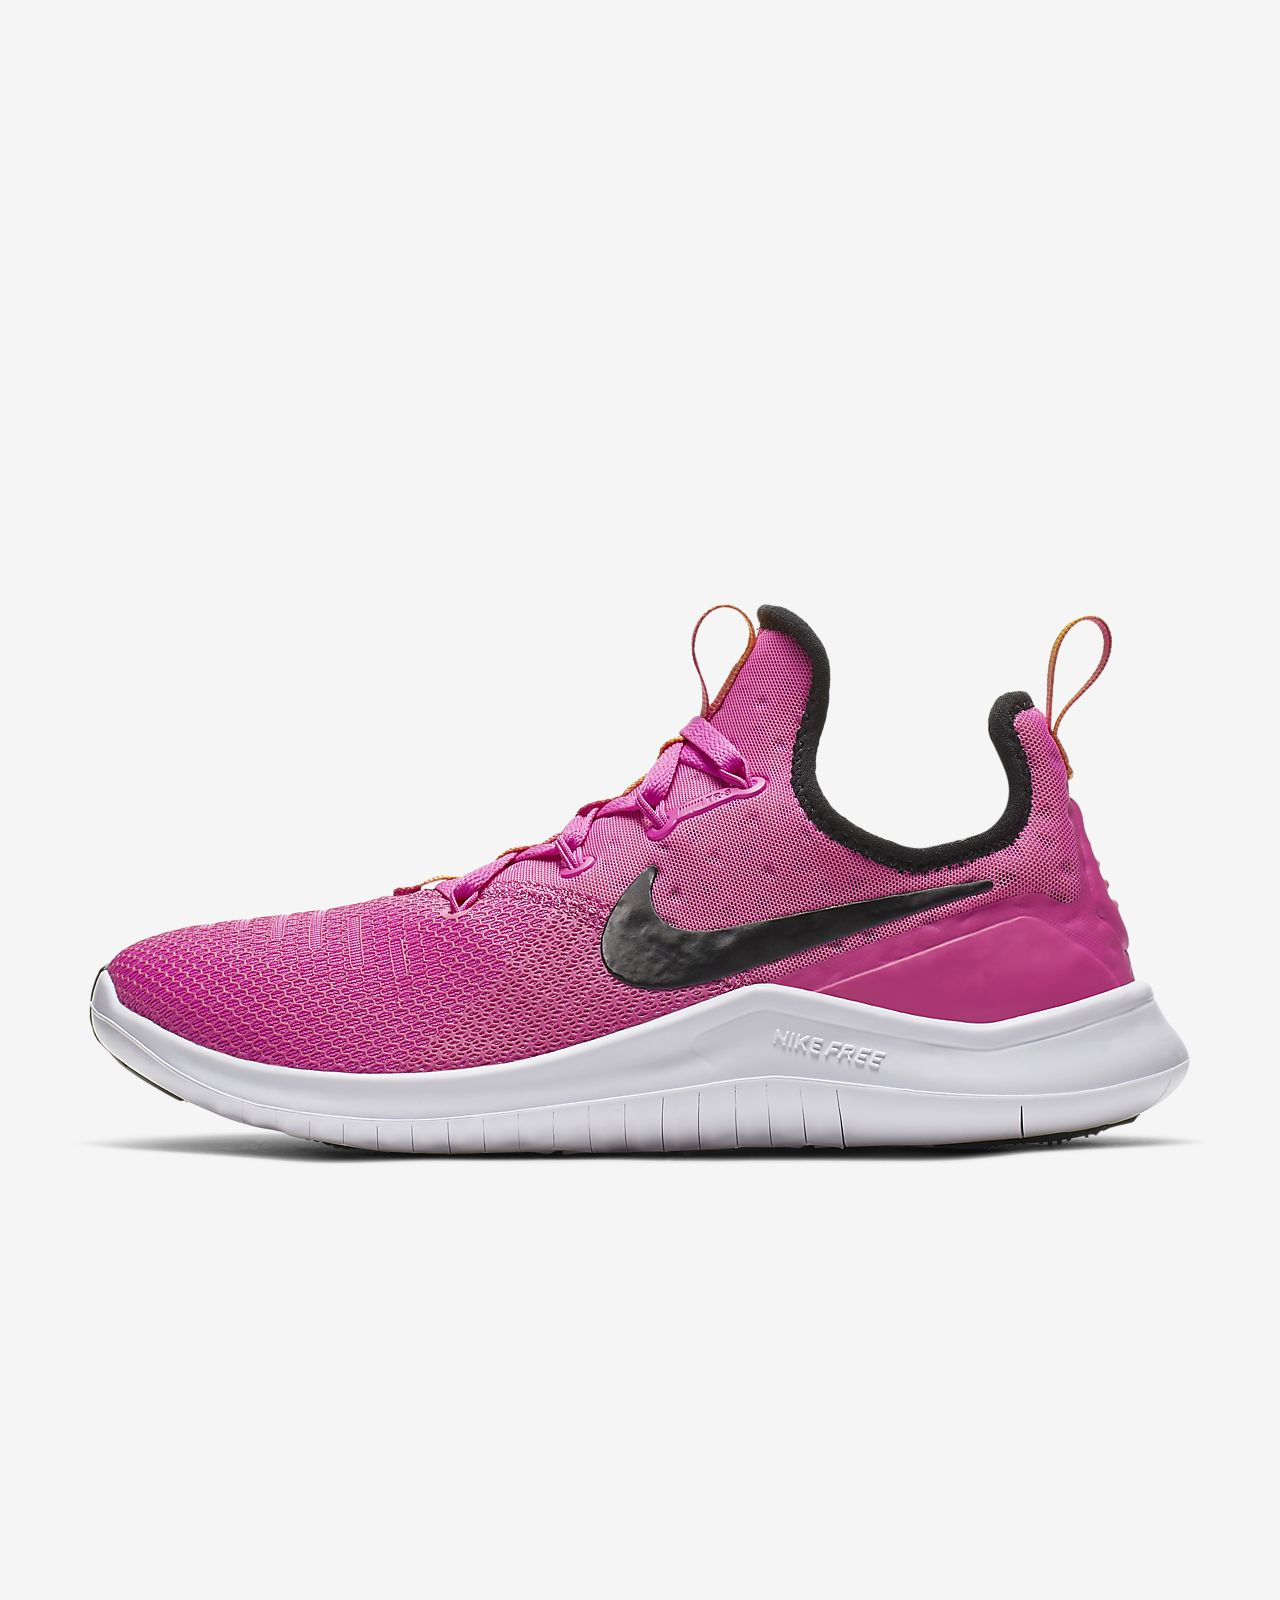 6009fd2ba5fb Nike Free TR8 Women s Gym HIIT Cross Training Shoe. Nike.com